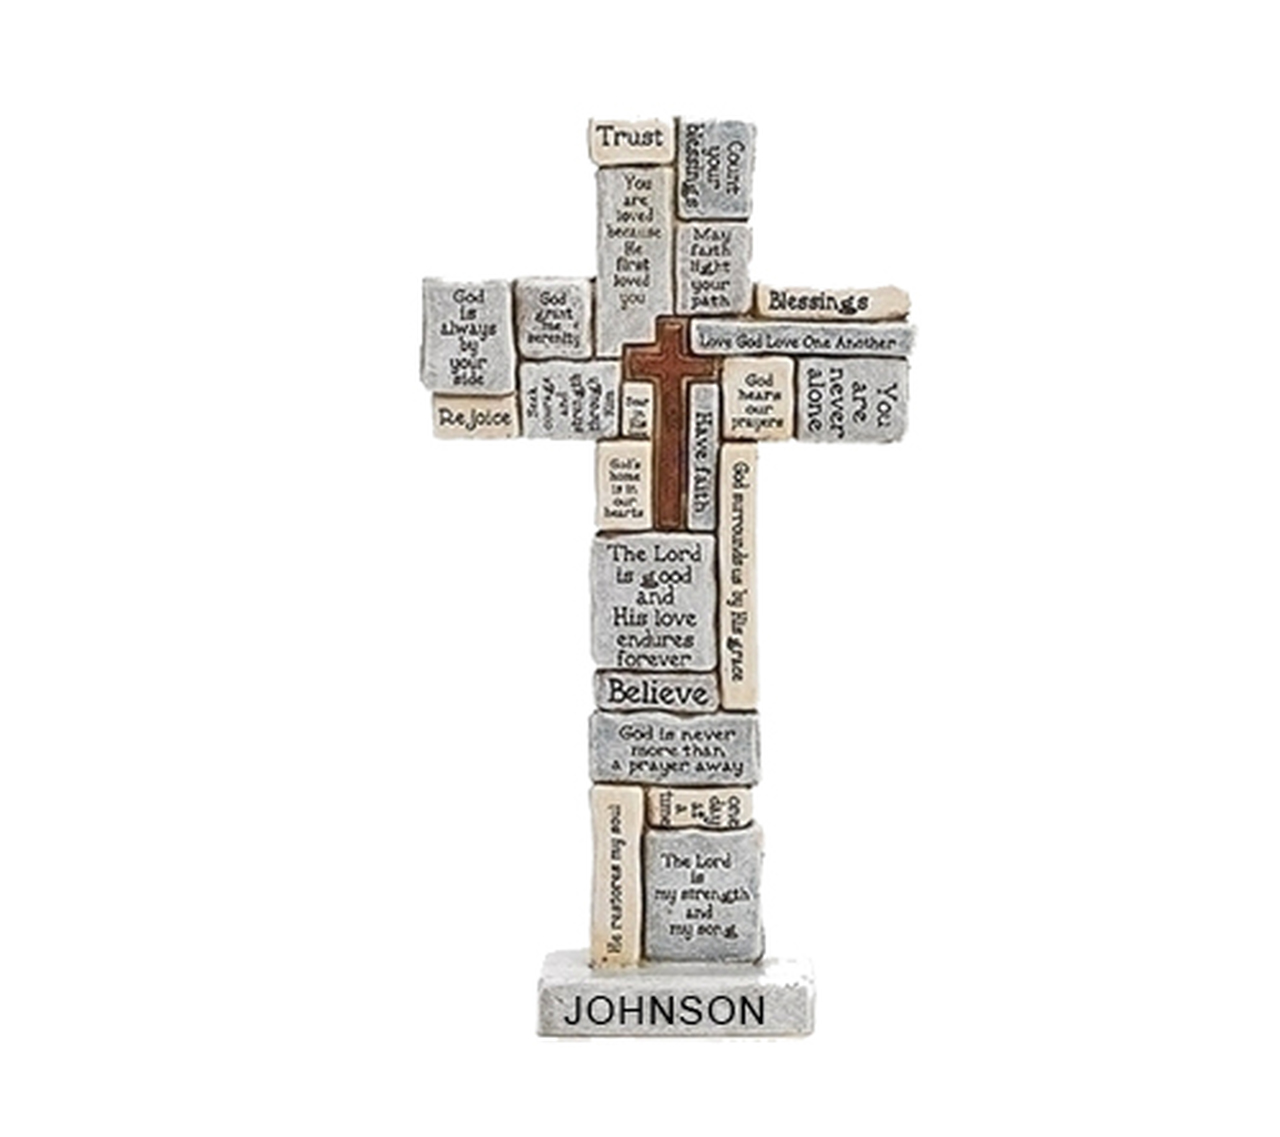 Personalized Words and Sayings Comfort Desk Cross.